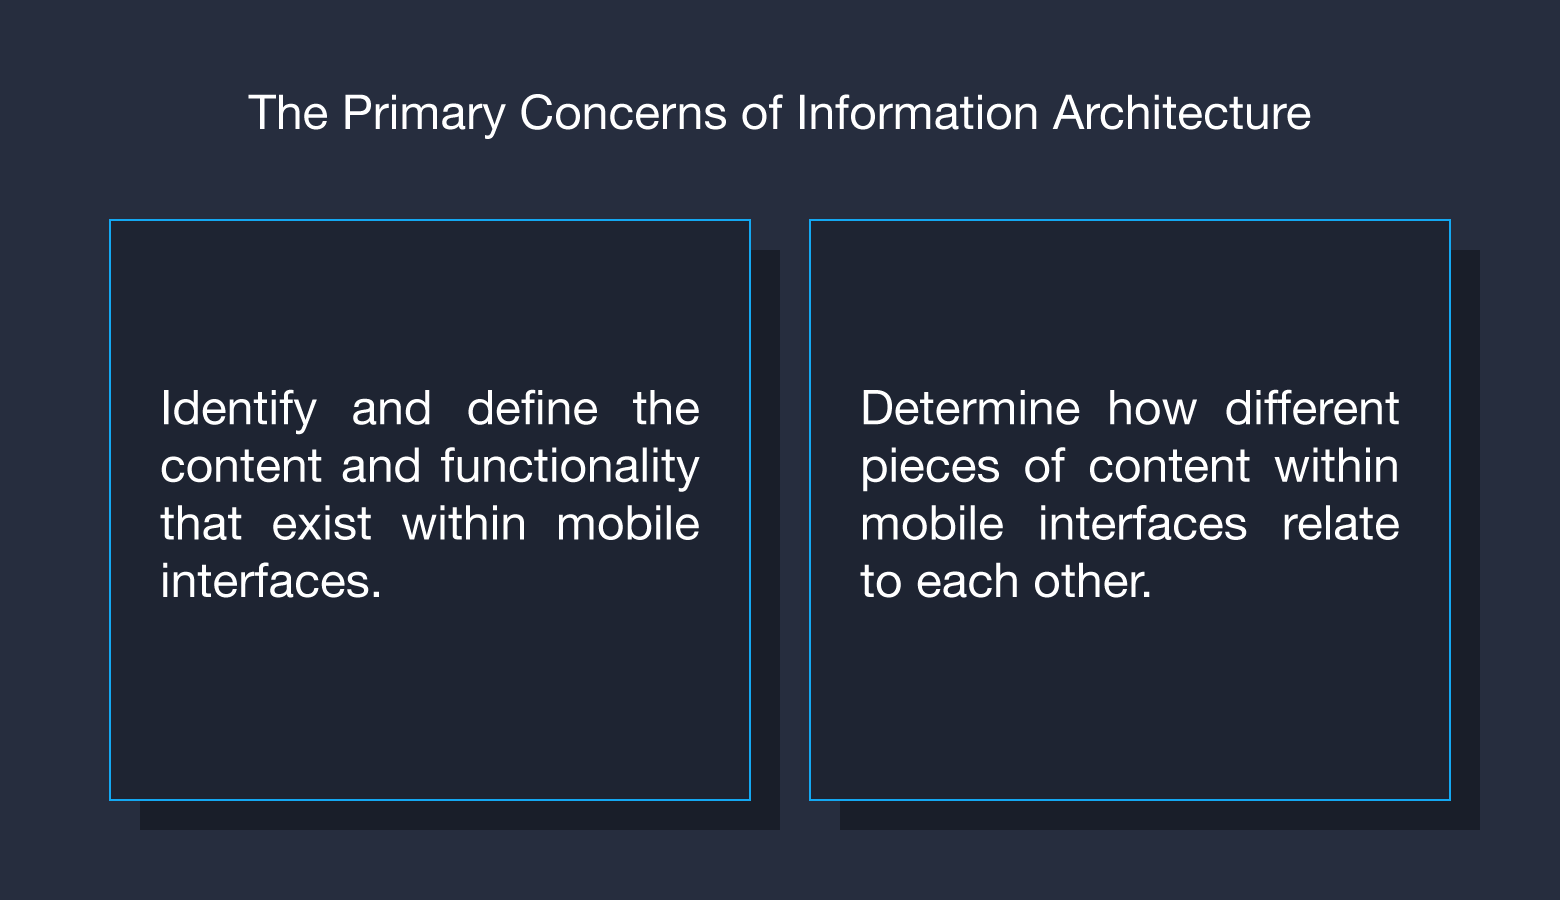 Information architecture is focused on labeling and organizing content.